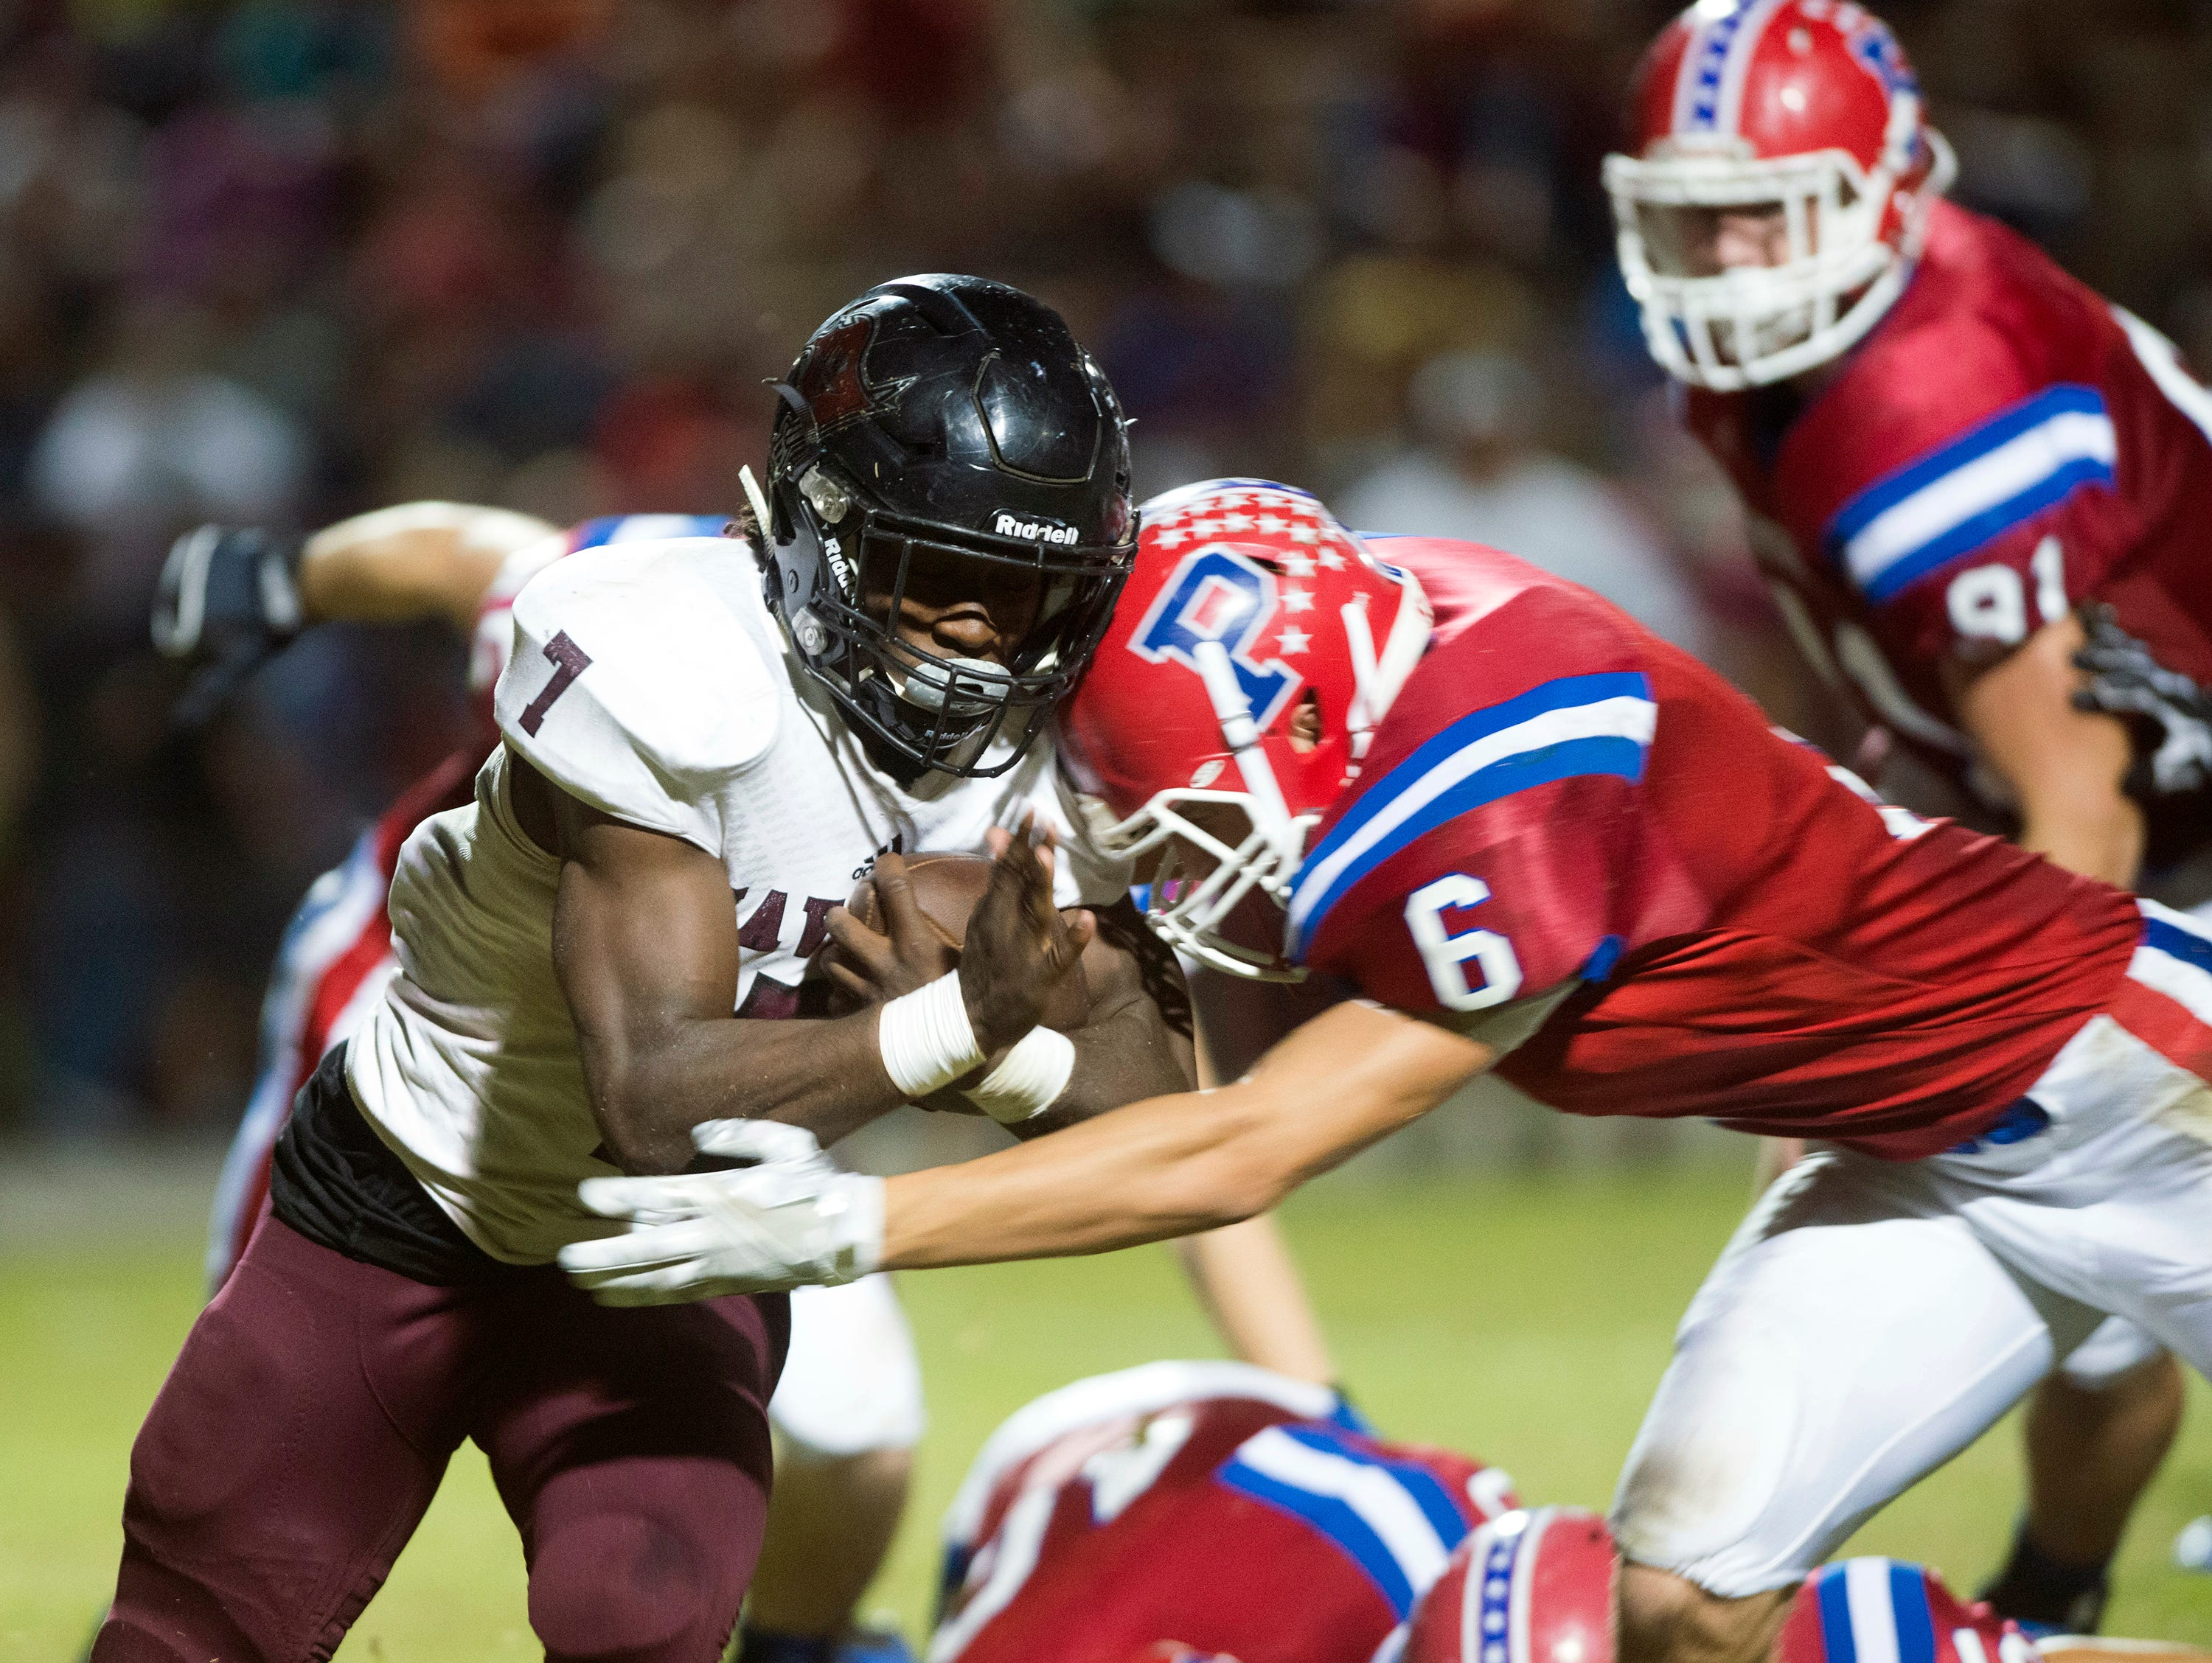 Navarre High School star running back Michael Carter (No. 7) gets wrapped up behind the line of scrimmage by the Pace High School line backer, Layne Plant, (No.6) during the District 2-6A matchup Friday night.